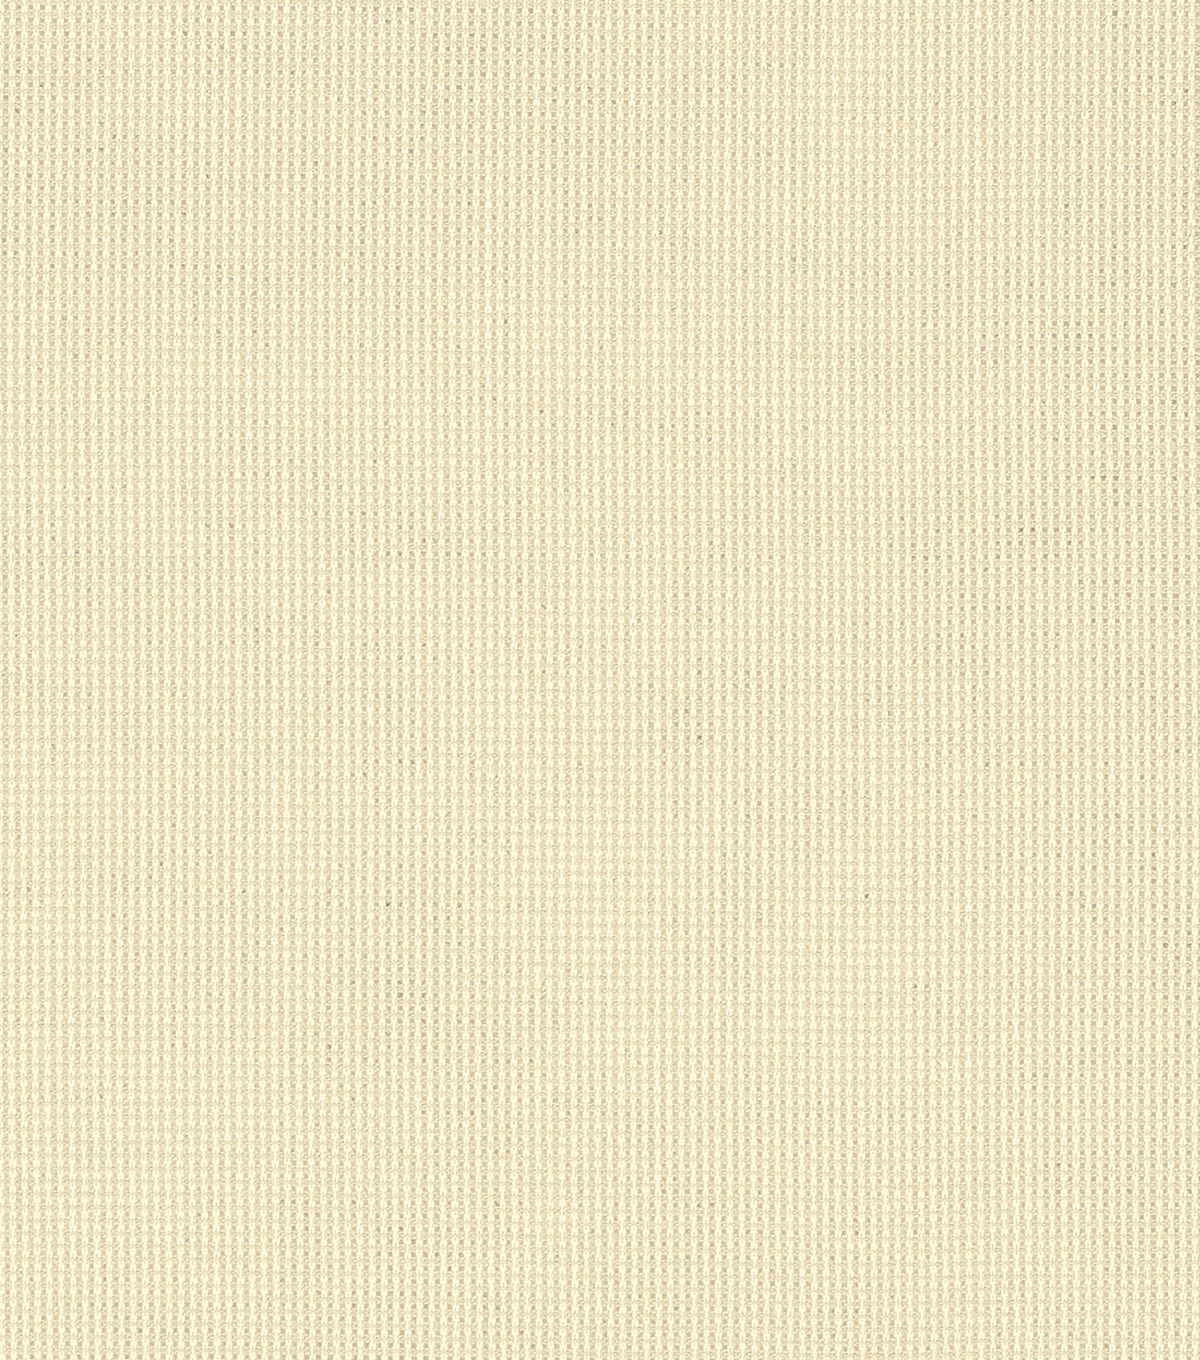 Sunbr Furn Shadow 51000-0000 Snow Swatch